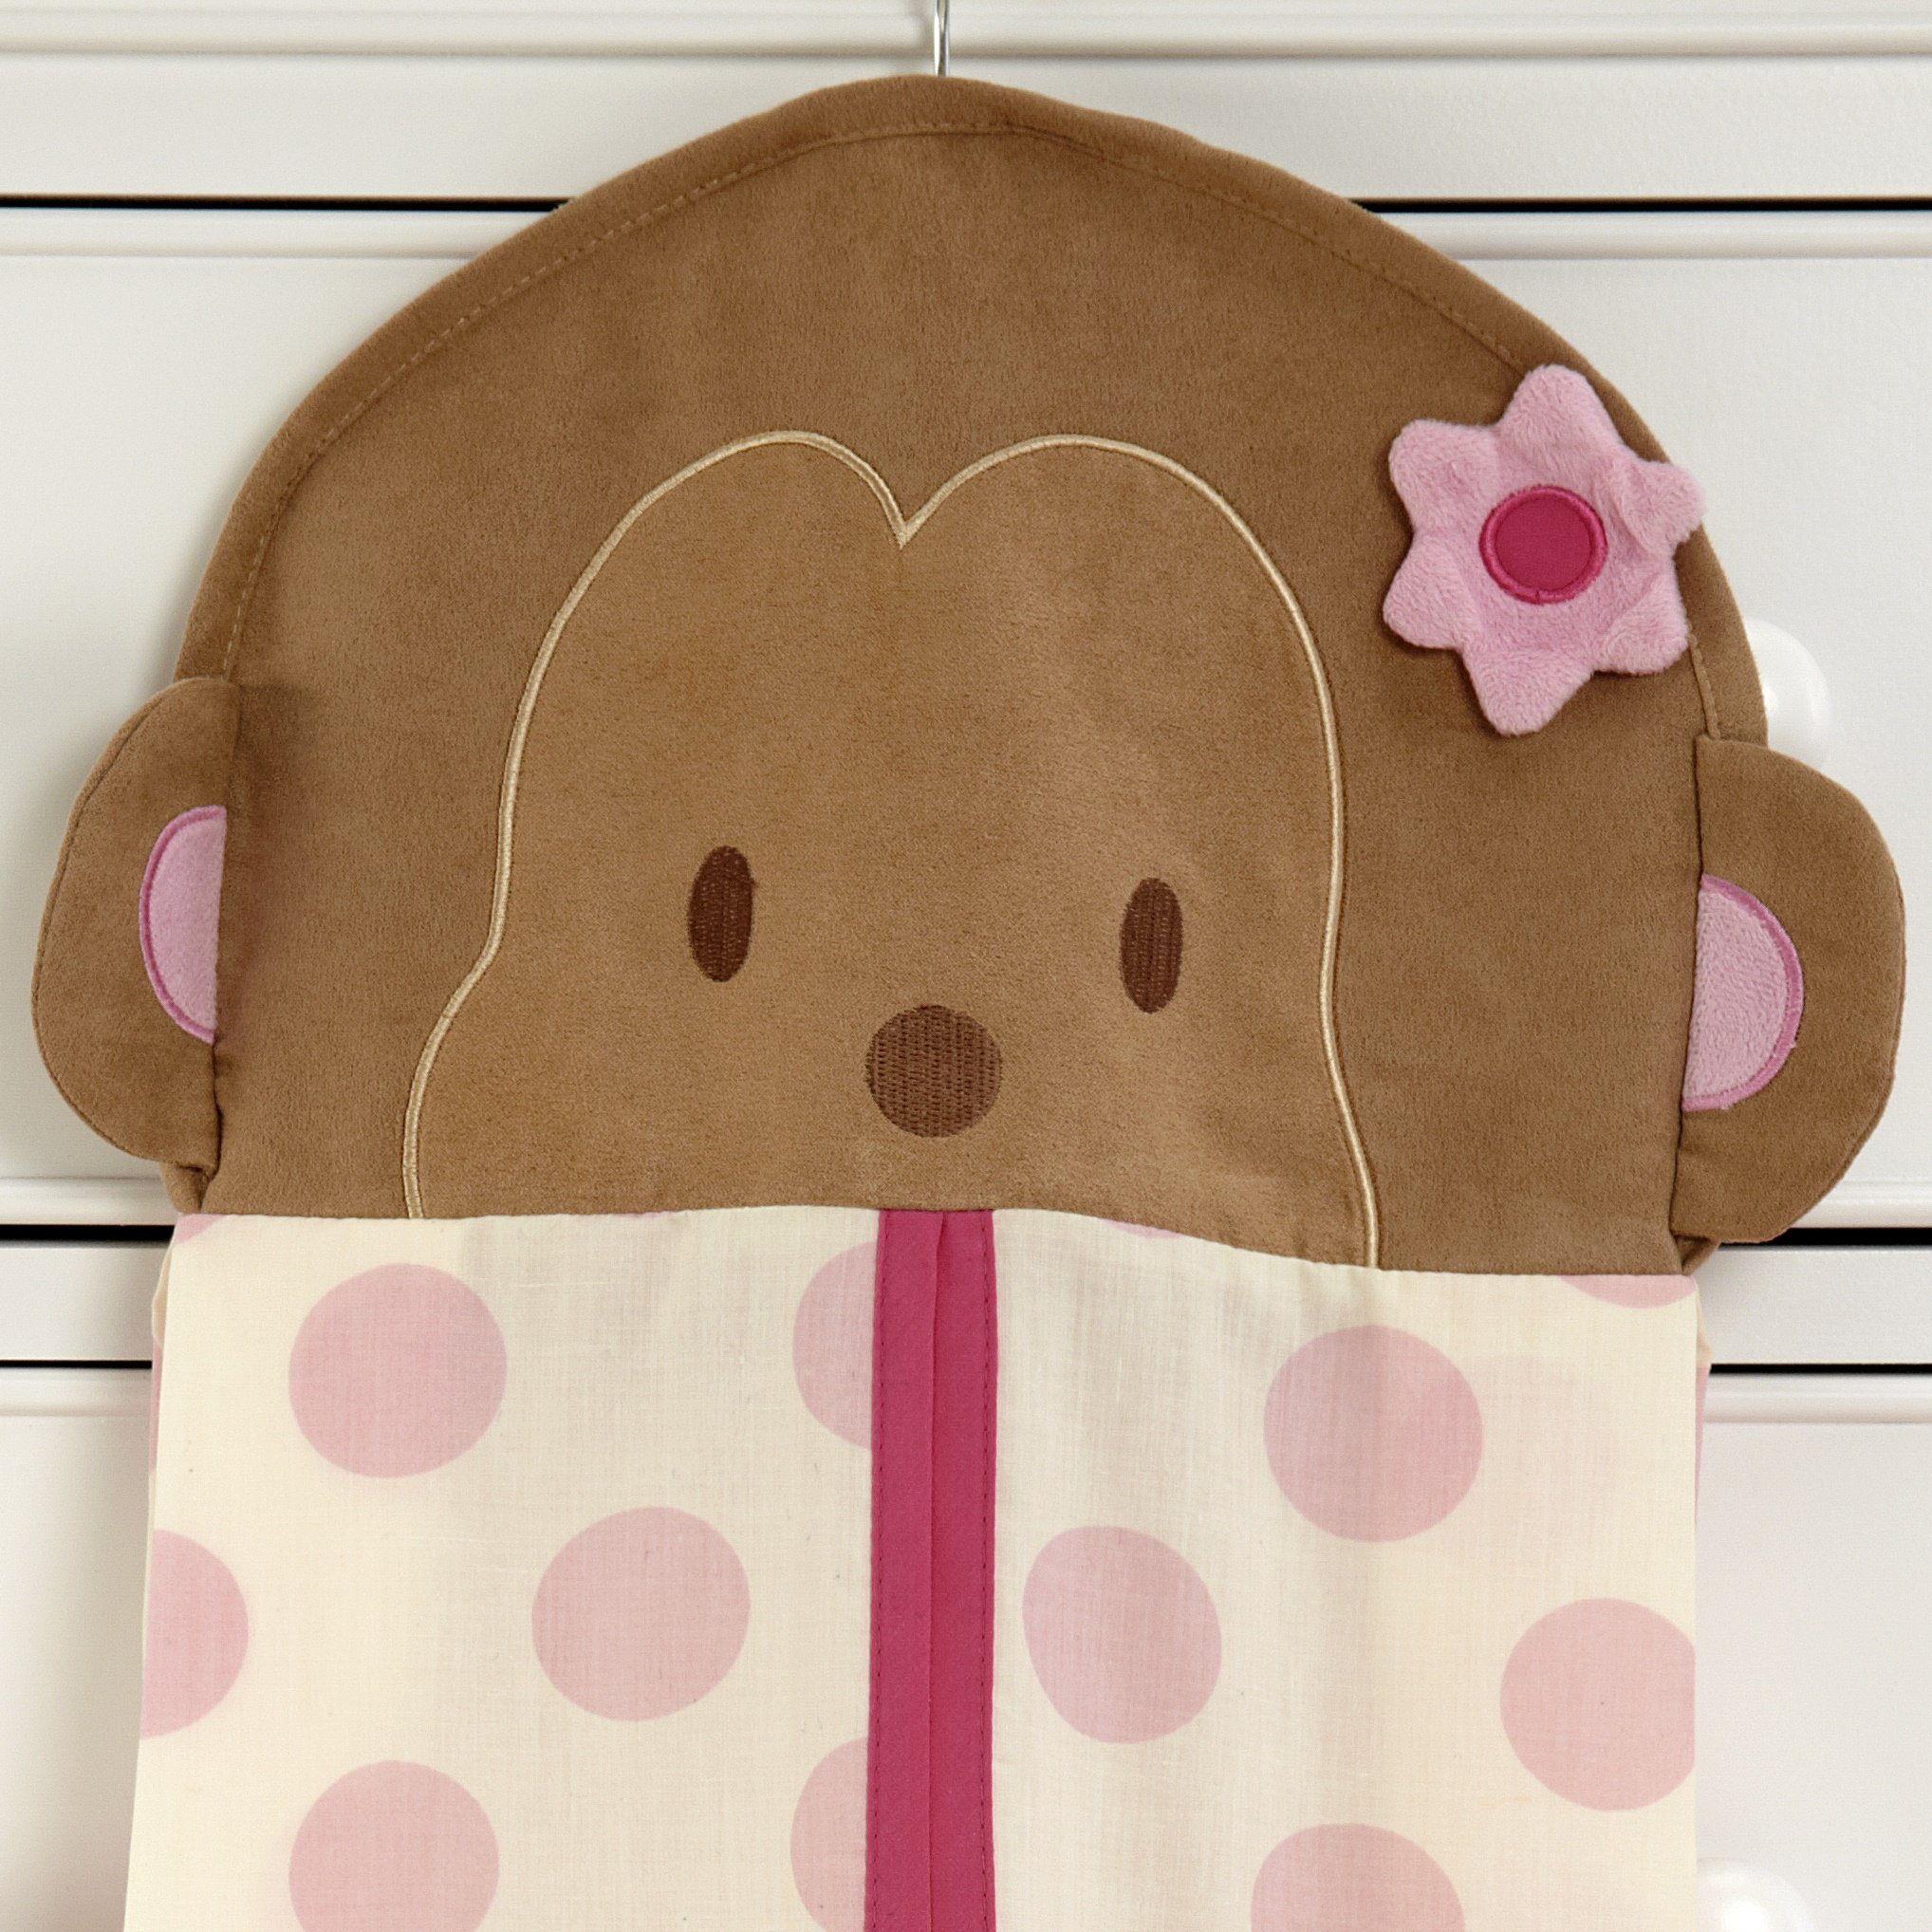 Carter's Jungle Collection Nursery Diaper Stacker, Pink/Lime/Brown/Tan by Carter's (Image #2)